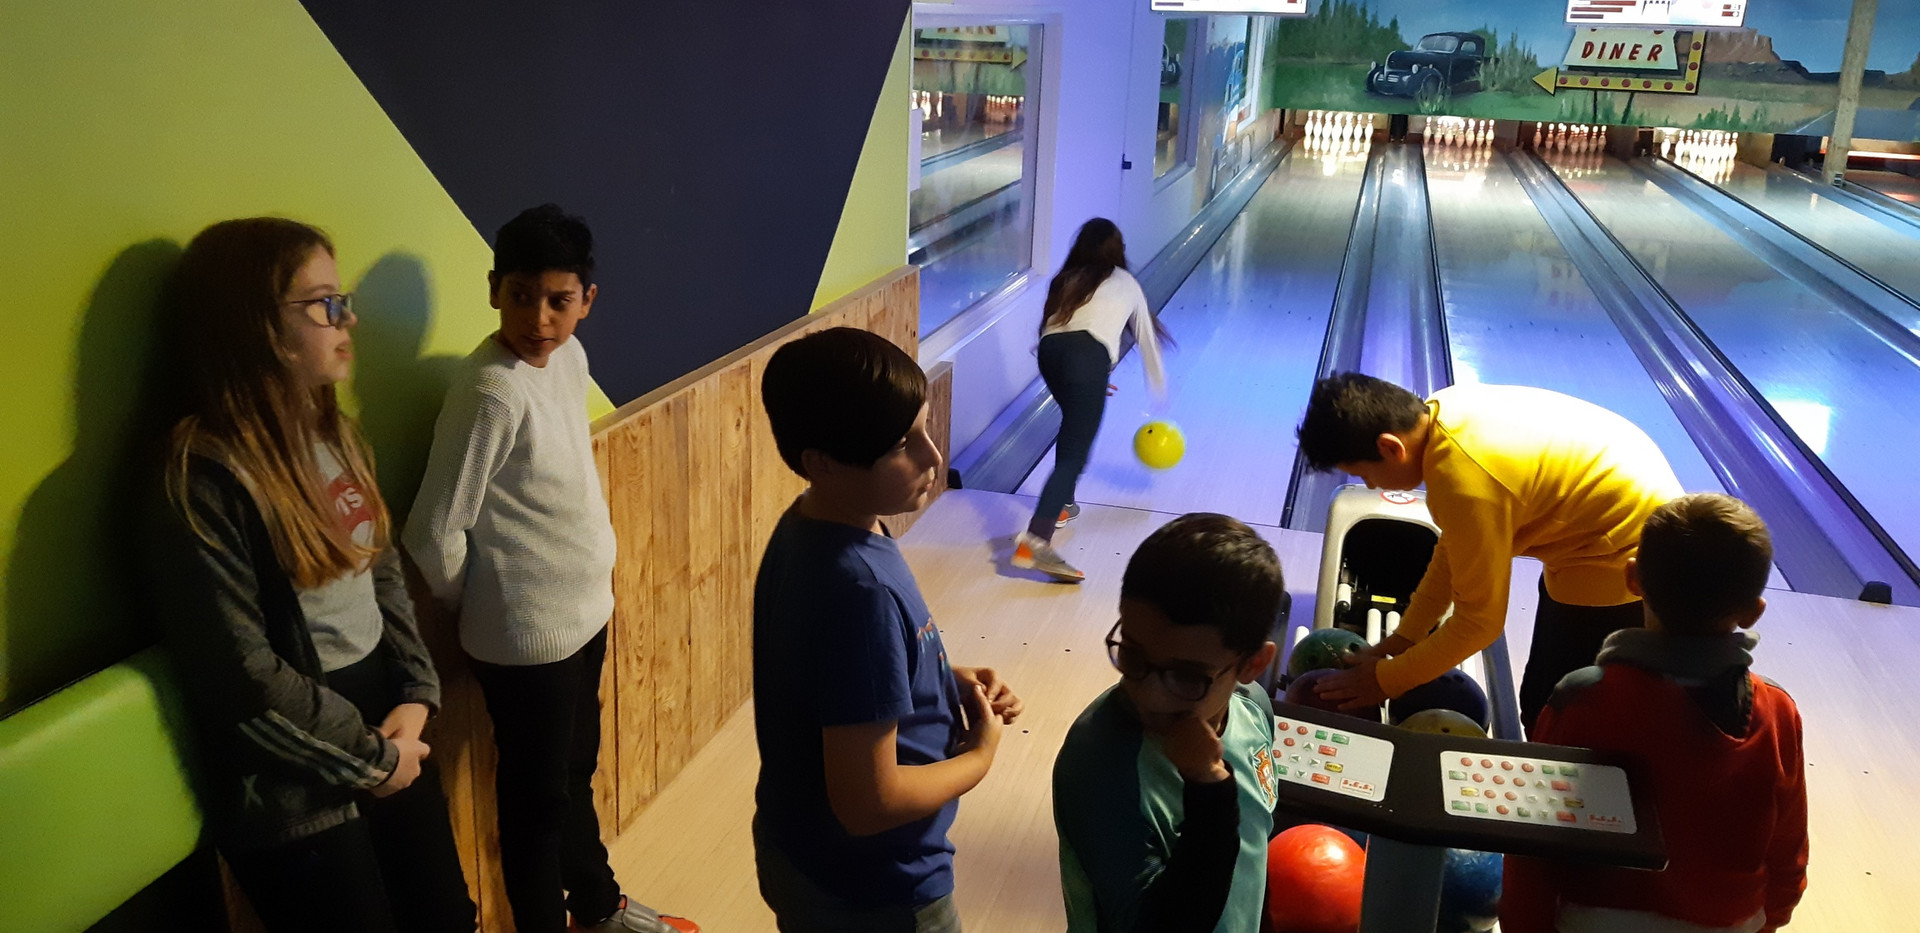 Bowling am All Inn 27.11.2018.jpg